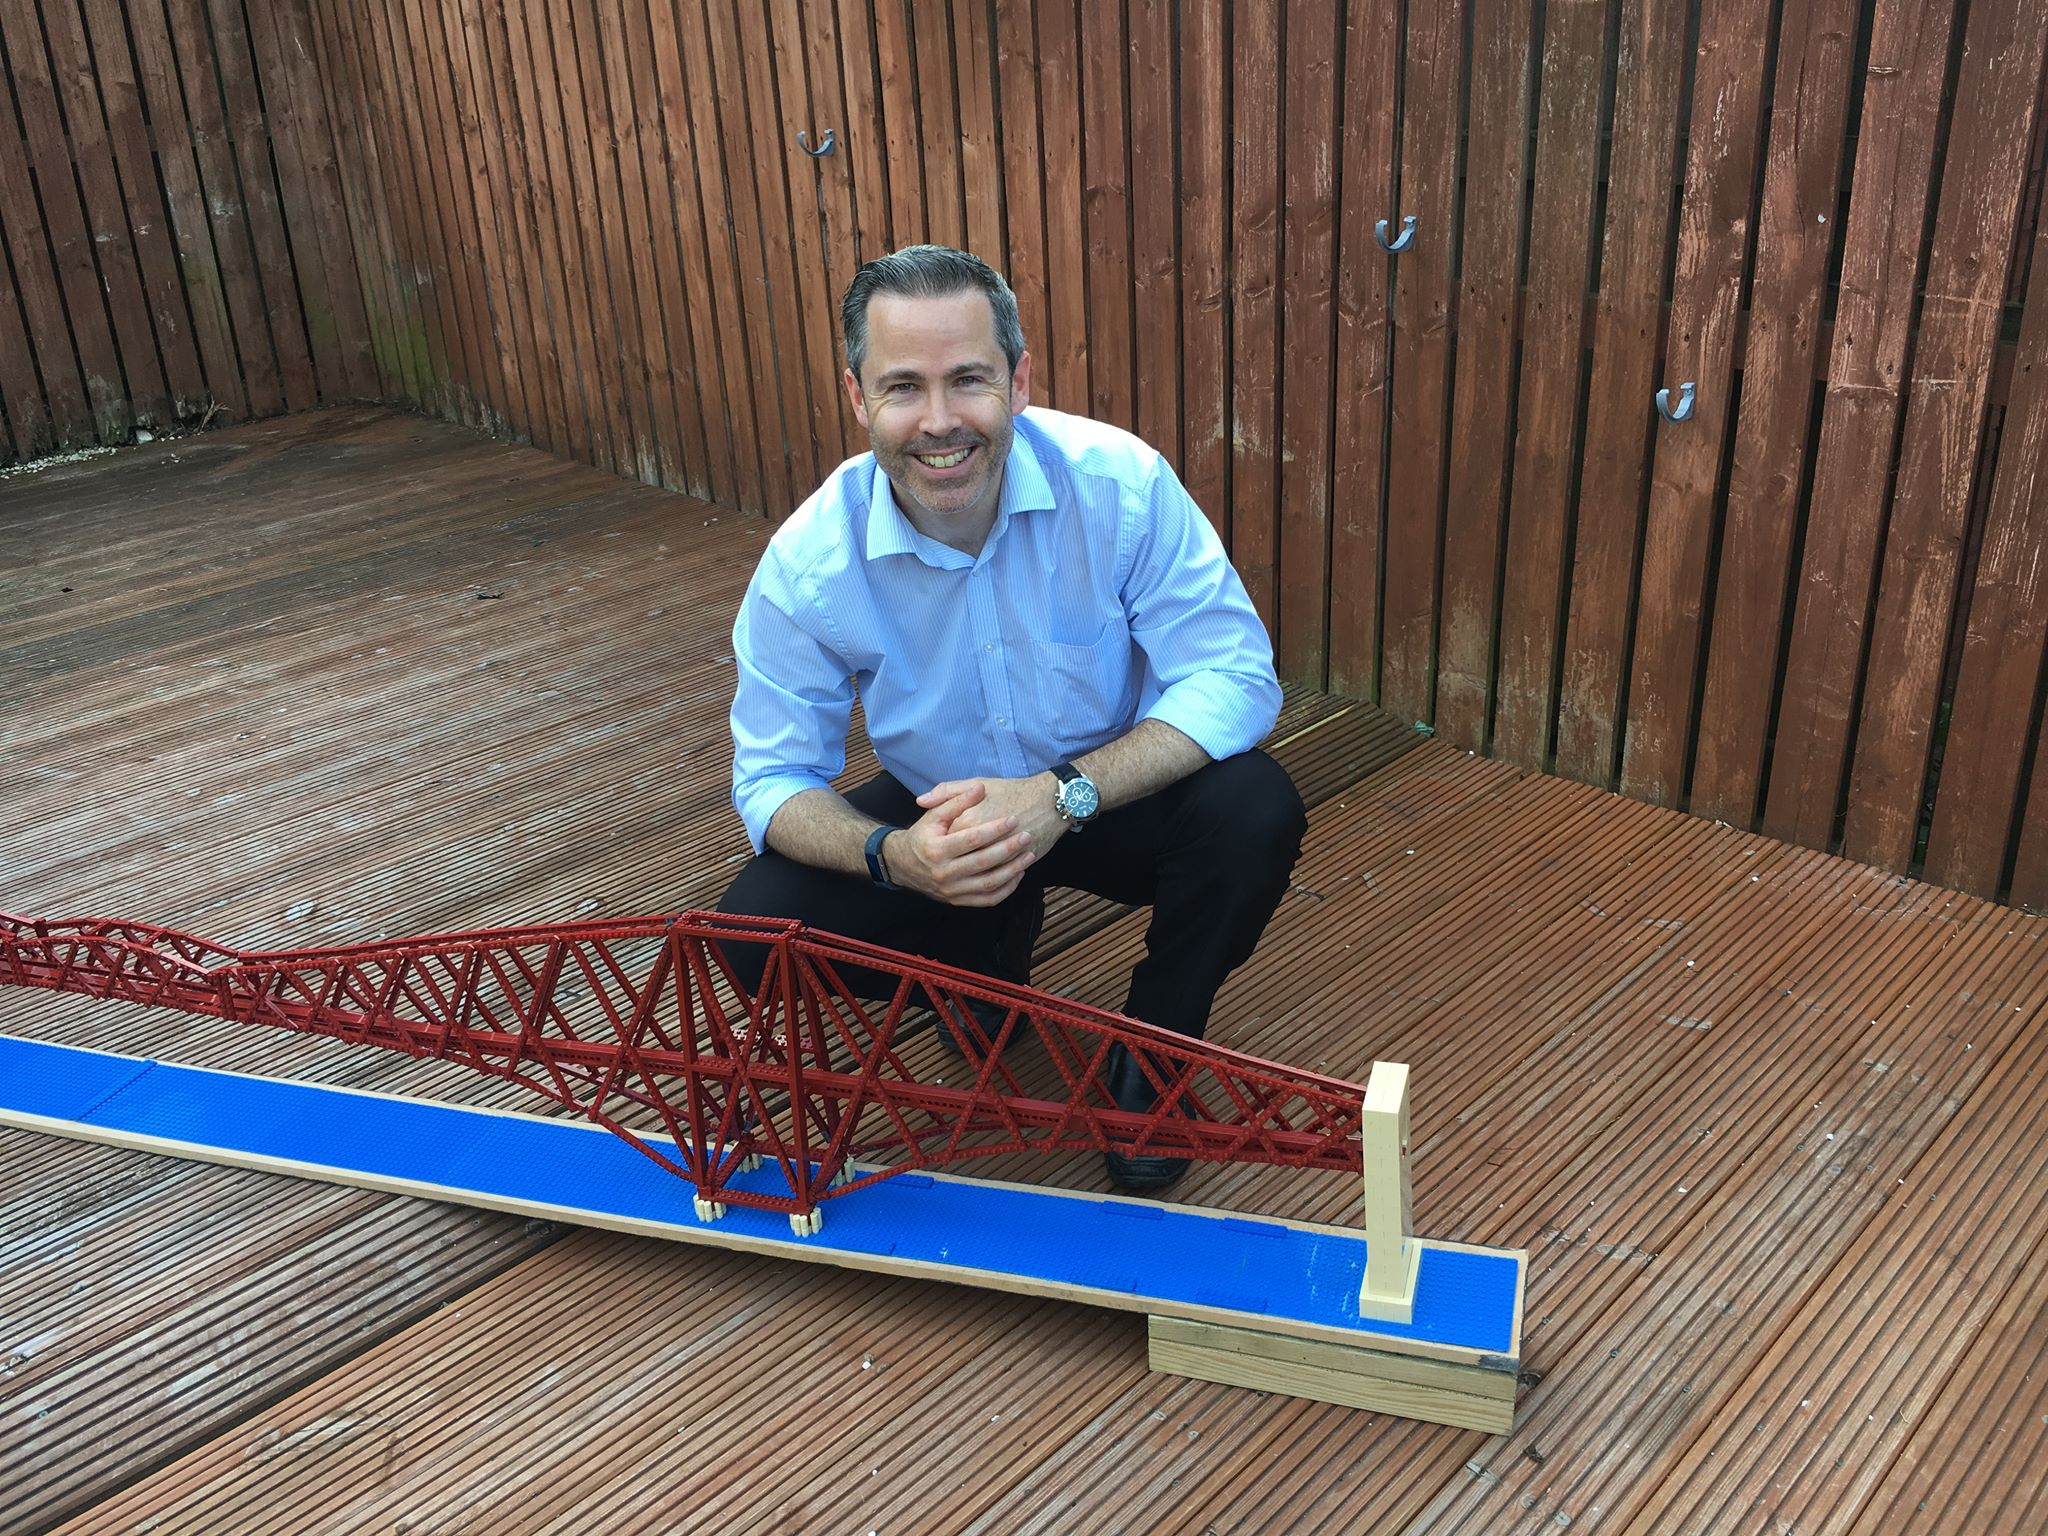 And finally    Engineer completes 4 7m Lego model of Forth